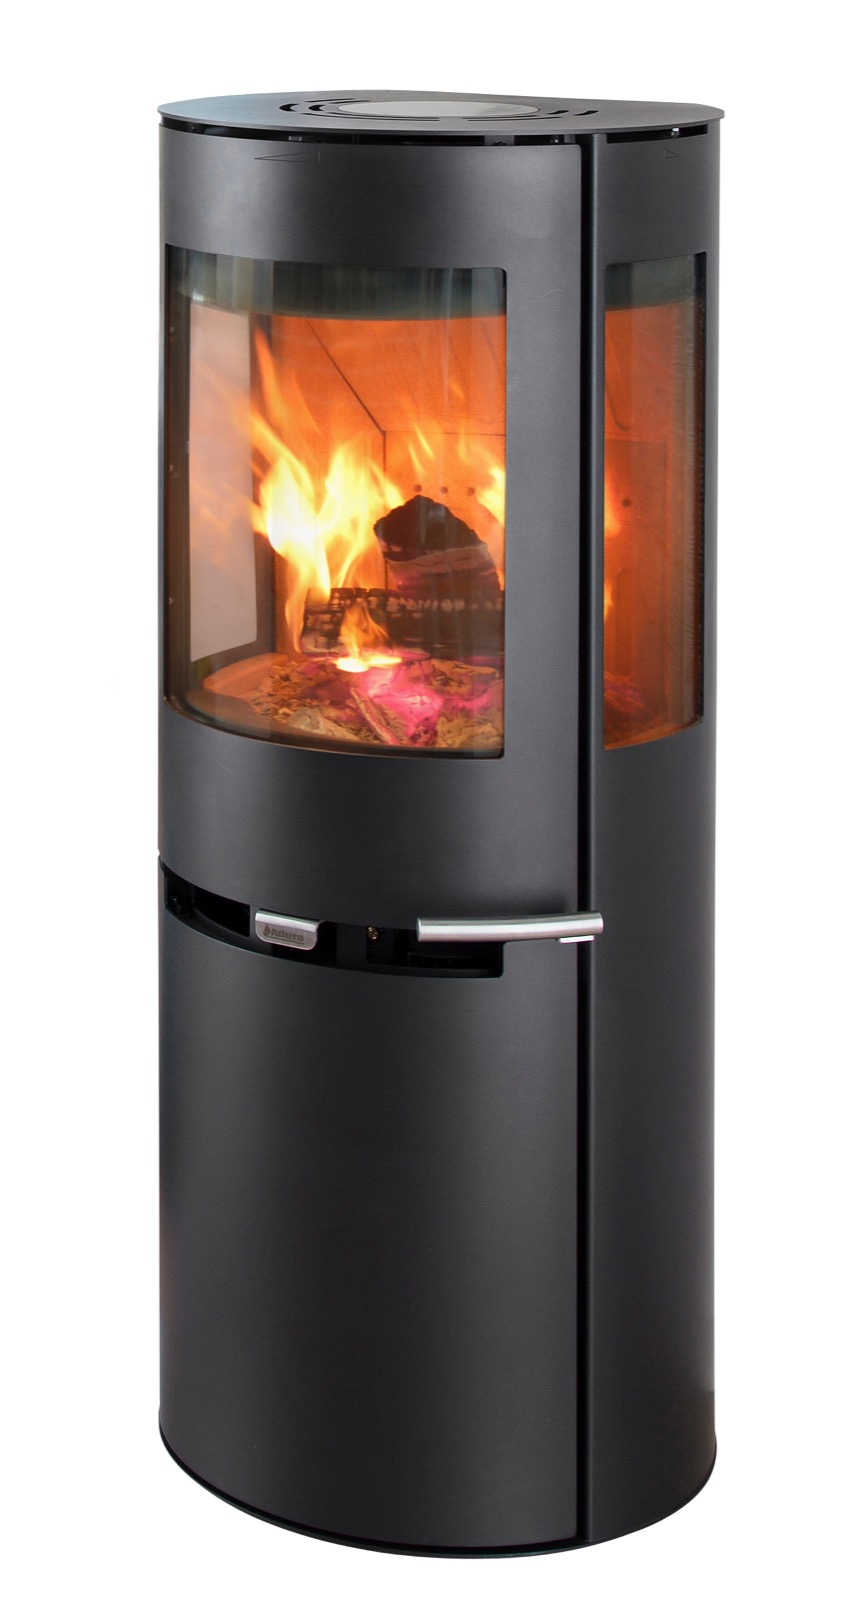 Gut gemocht ADURO 9-5 LUX Defra approved Wood Burning Stove - Simply Stoves XM49